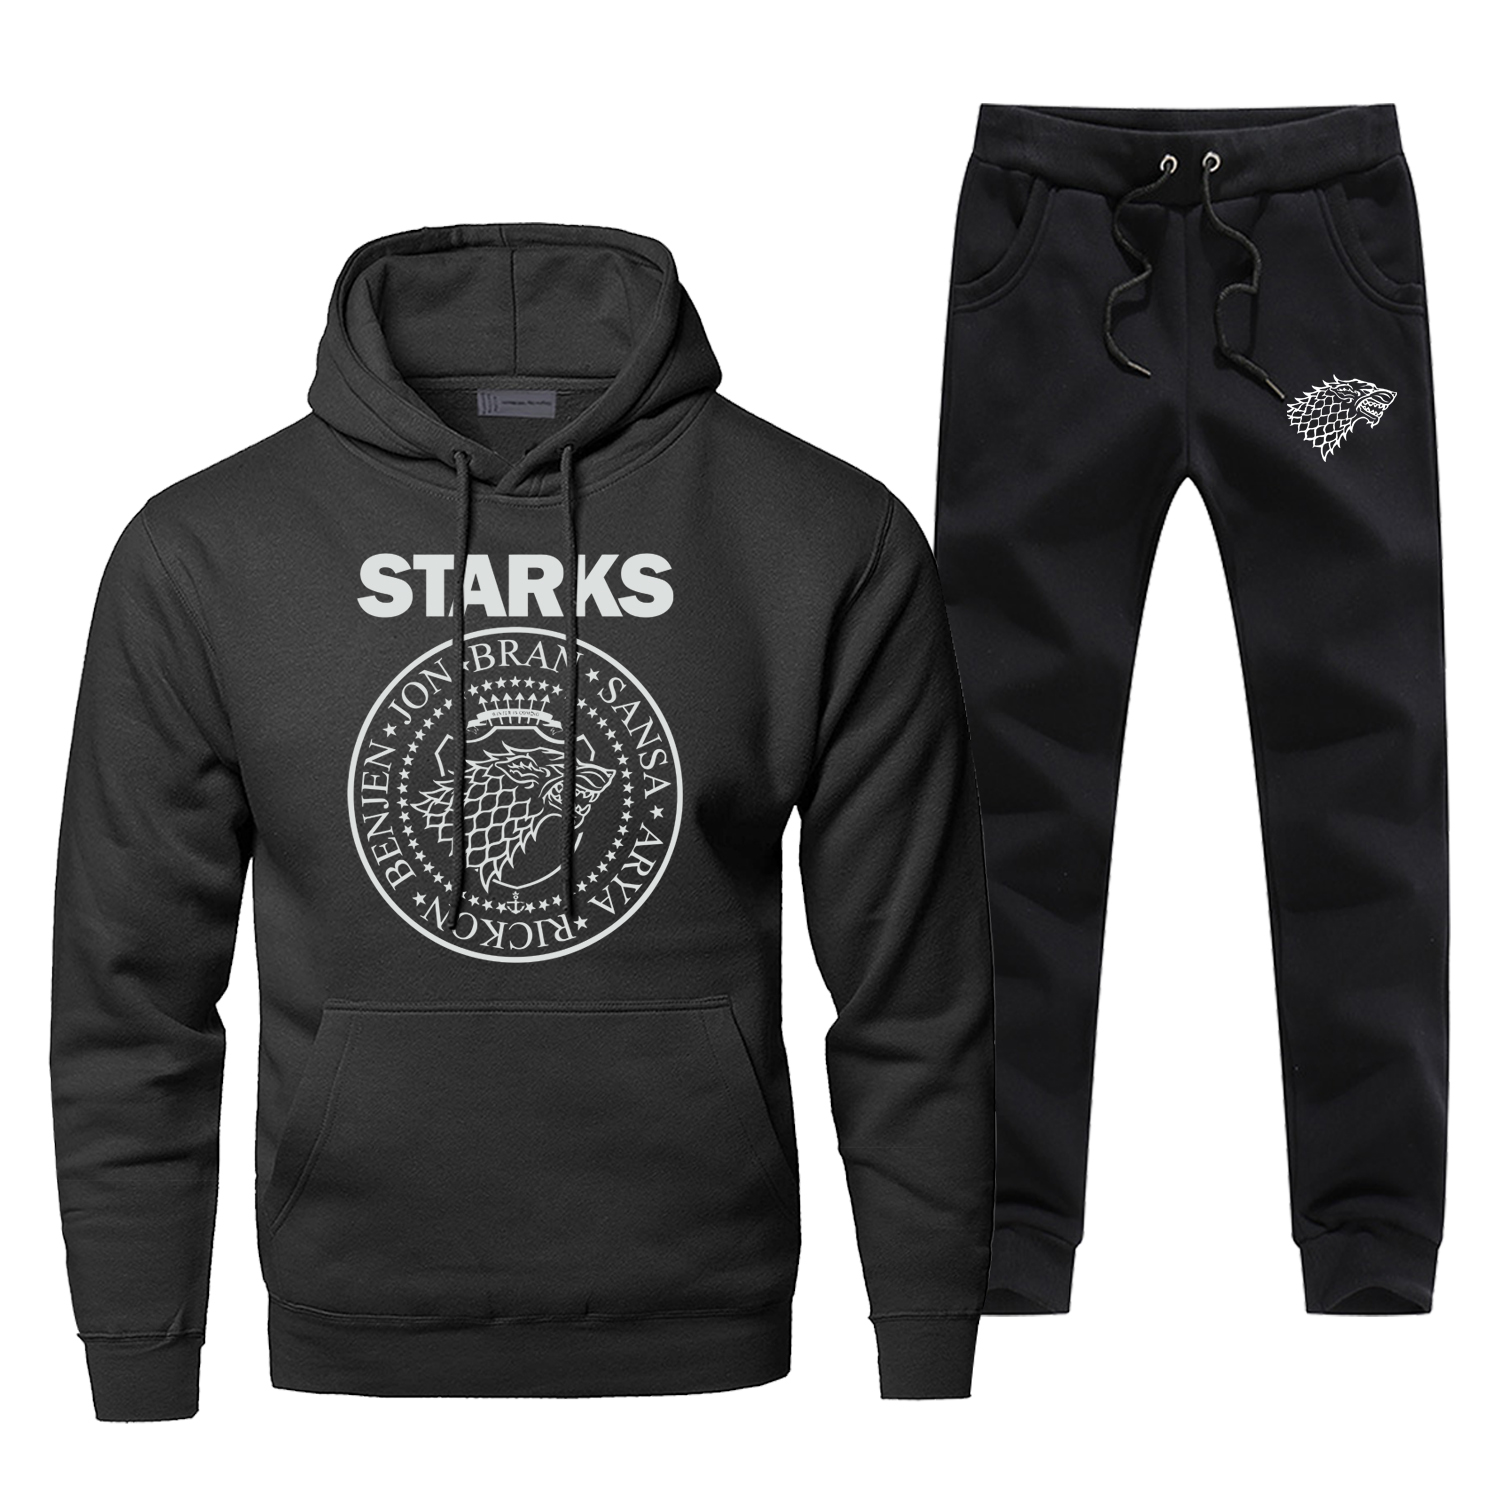 Game Of Thrones Mens Hoodies Sets Two Piece Pant House Stark Wolf Hoodie Sweatshirt Sweatpants Streetwear Sportswear Sweatshirts